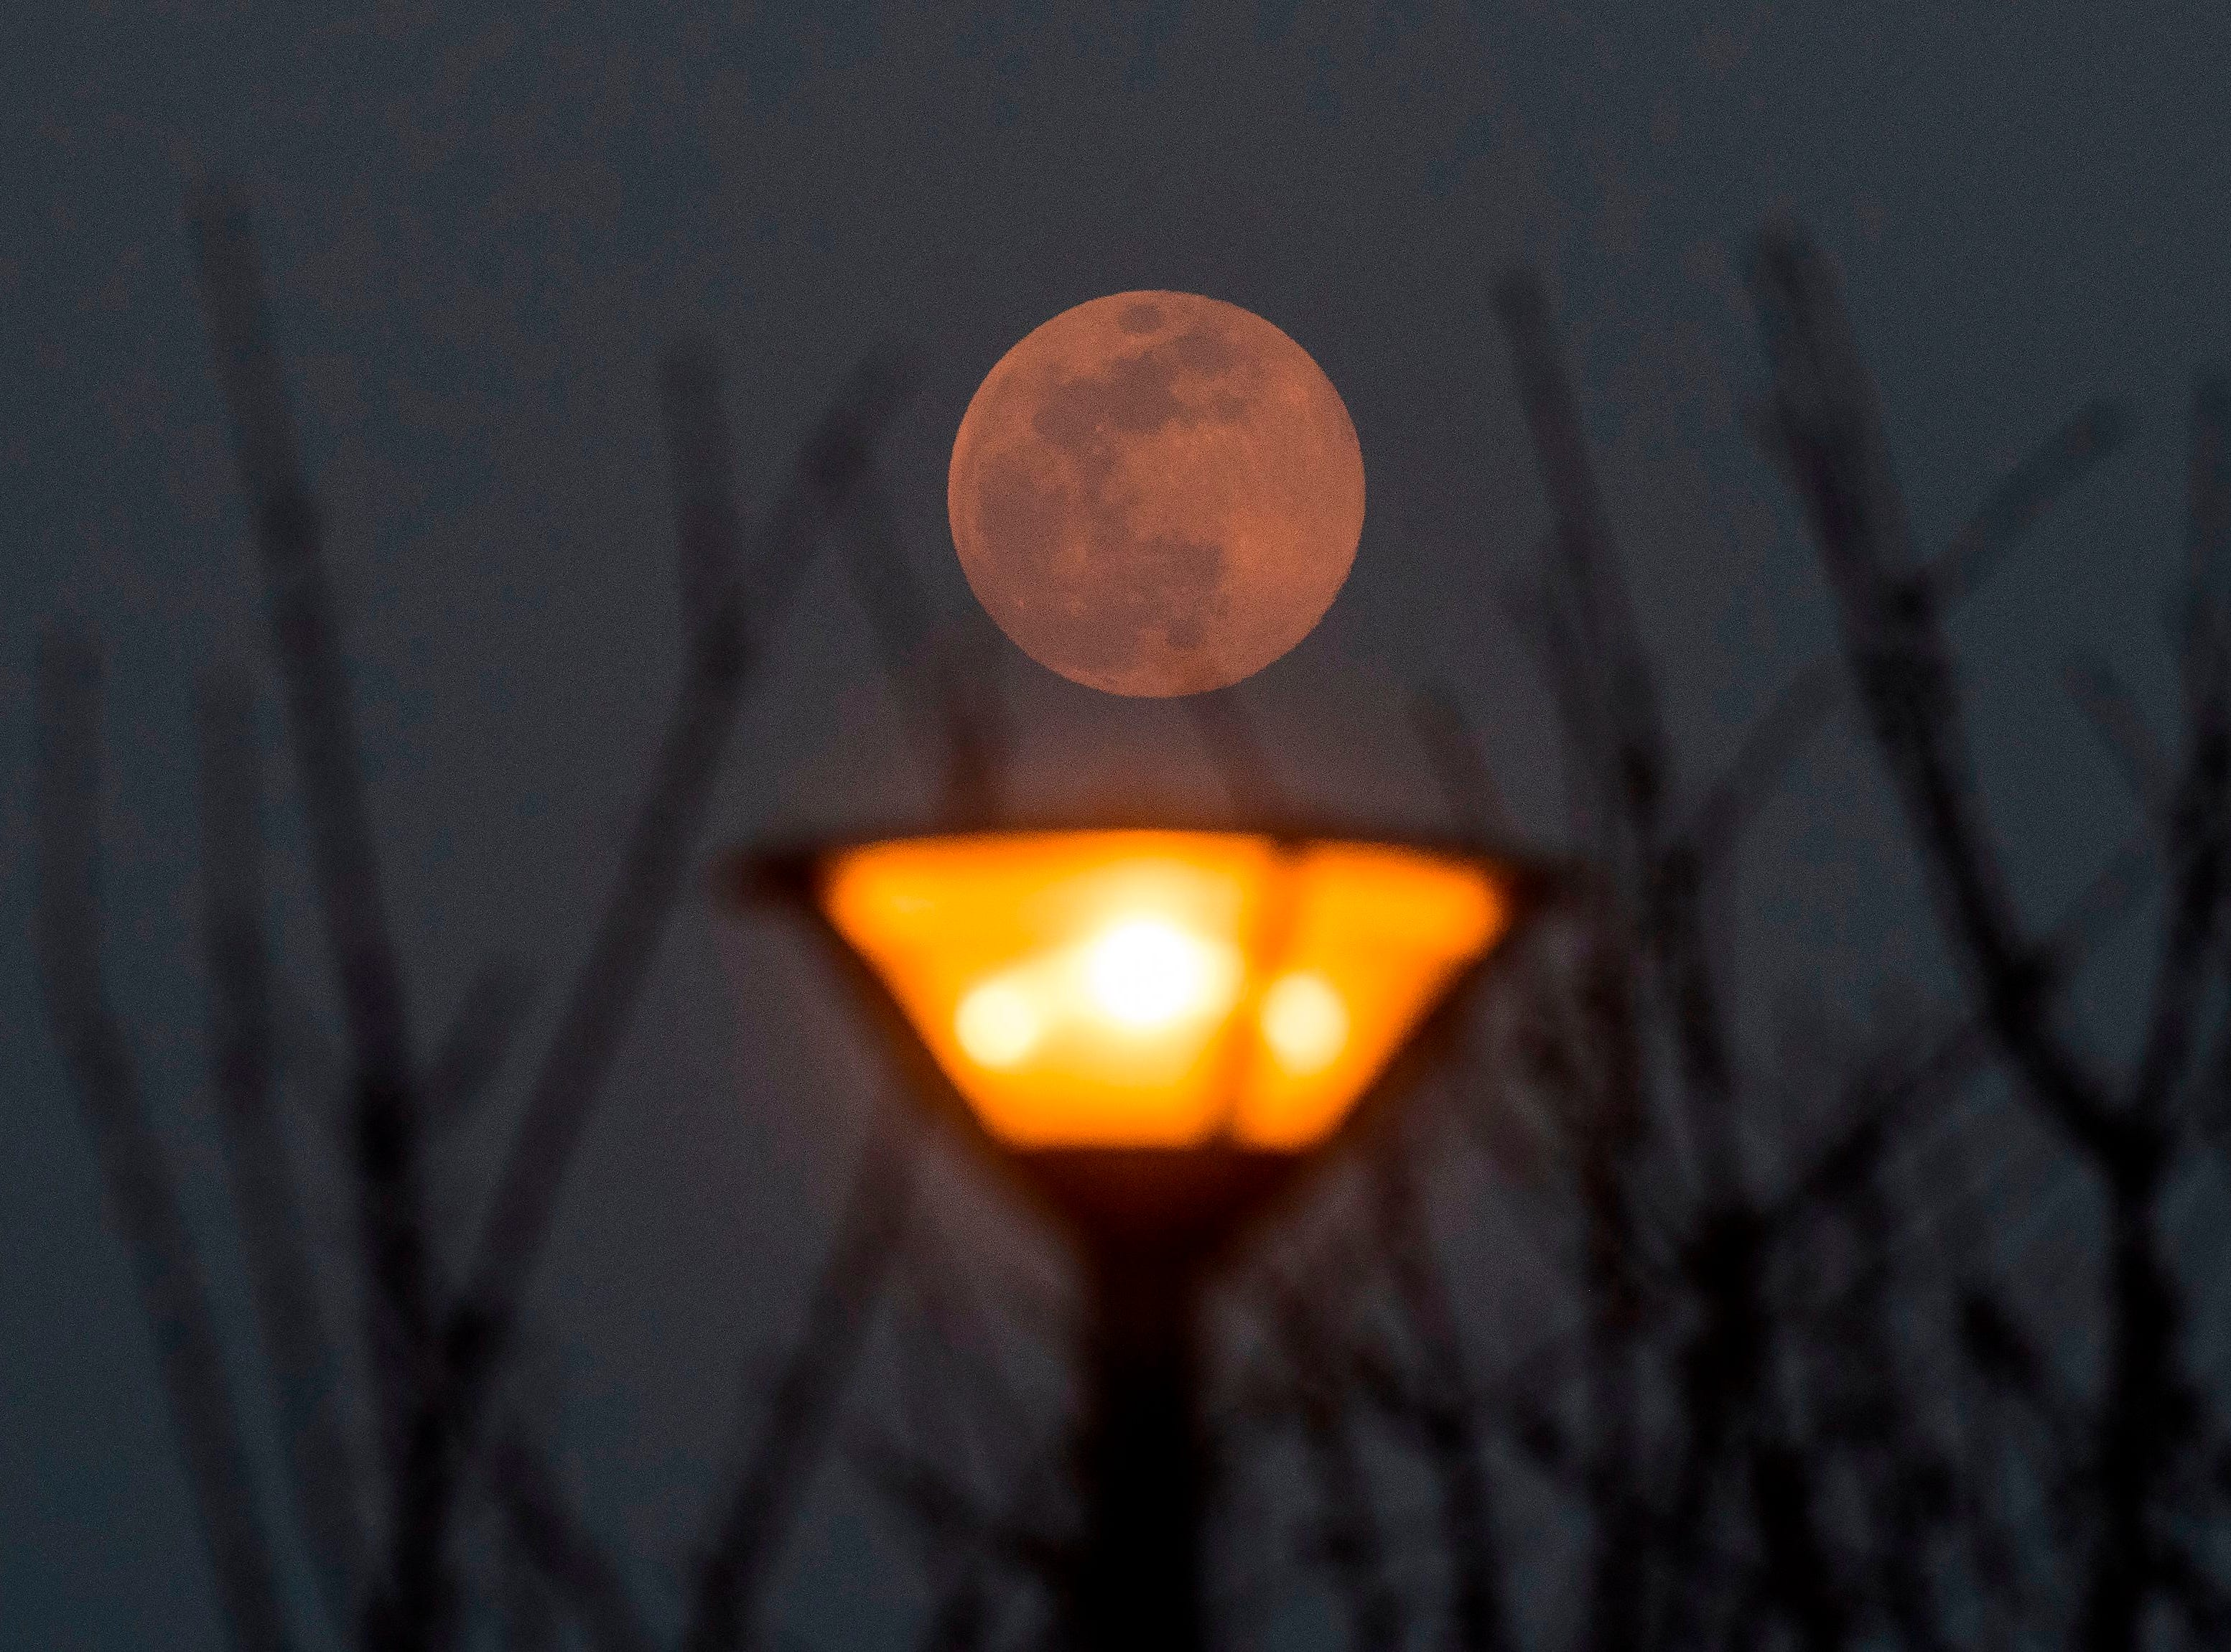 A full moon, announcing the end of the winter season, rises in Skopje, North Macedonia on March 20, 2019.